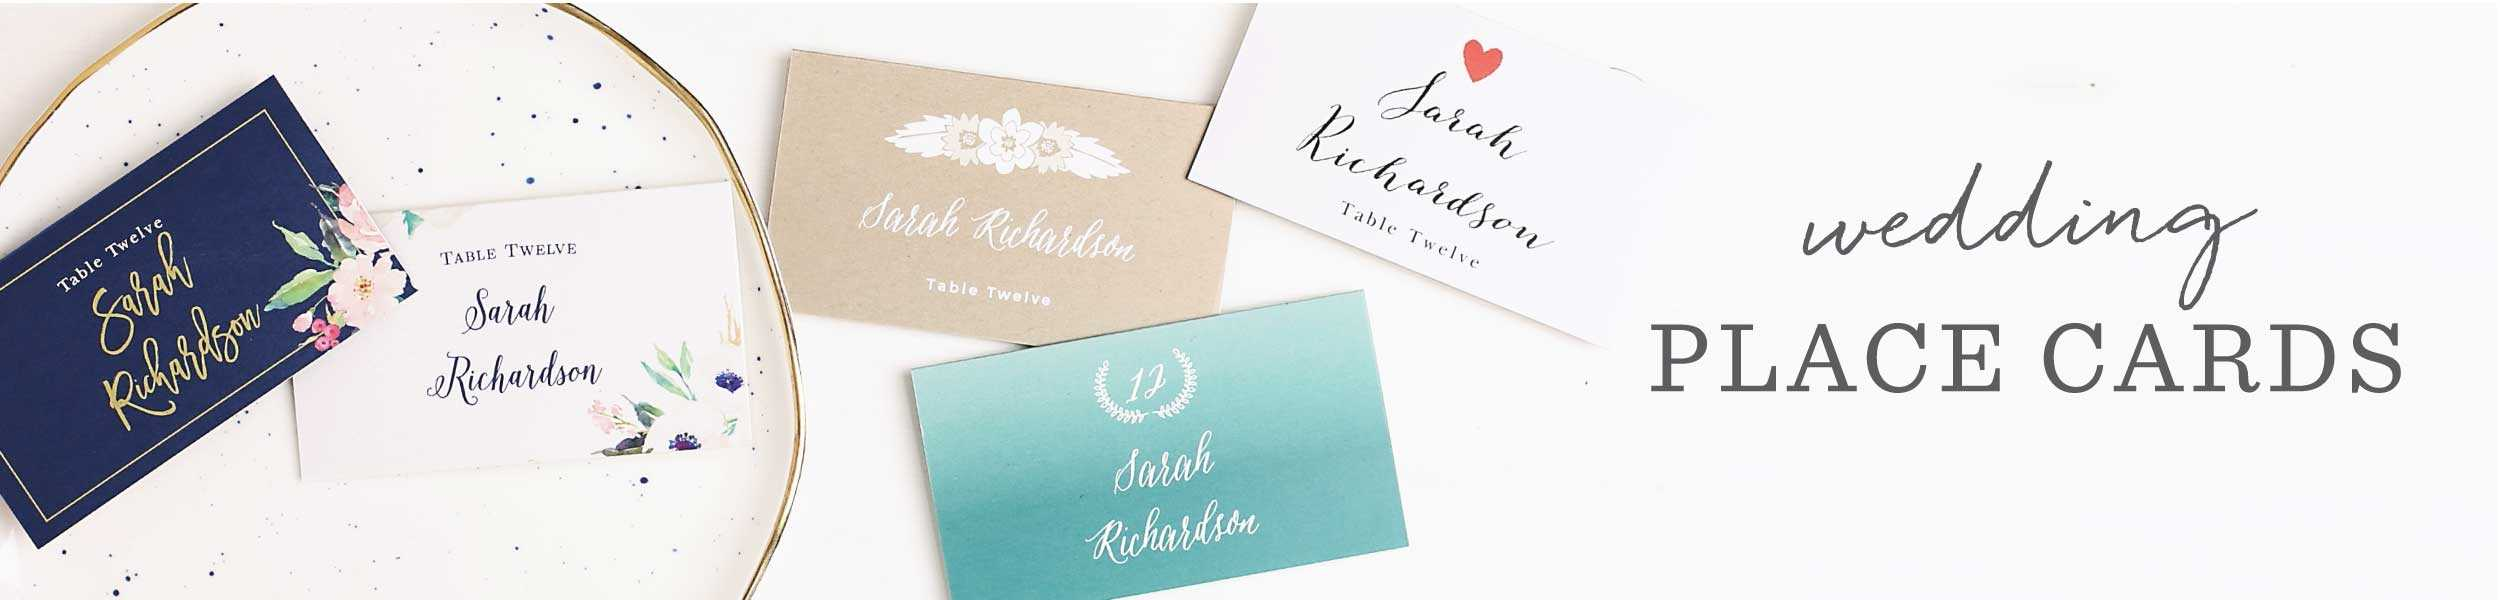 Redwood Forest Place Cards Classy Free Wedding Table Name With Table Name Cards Template Free